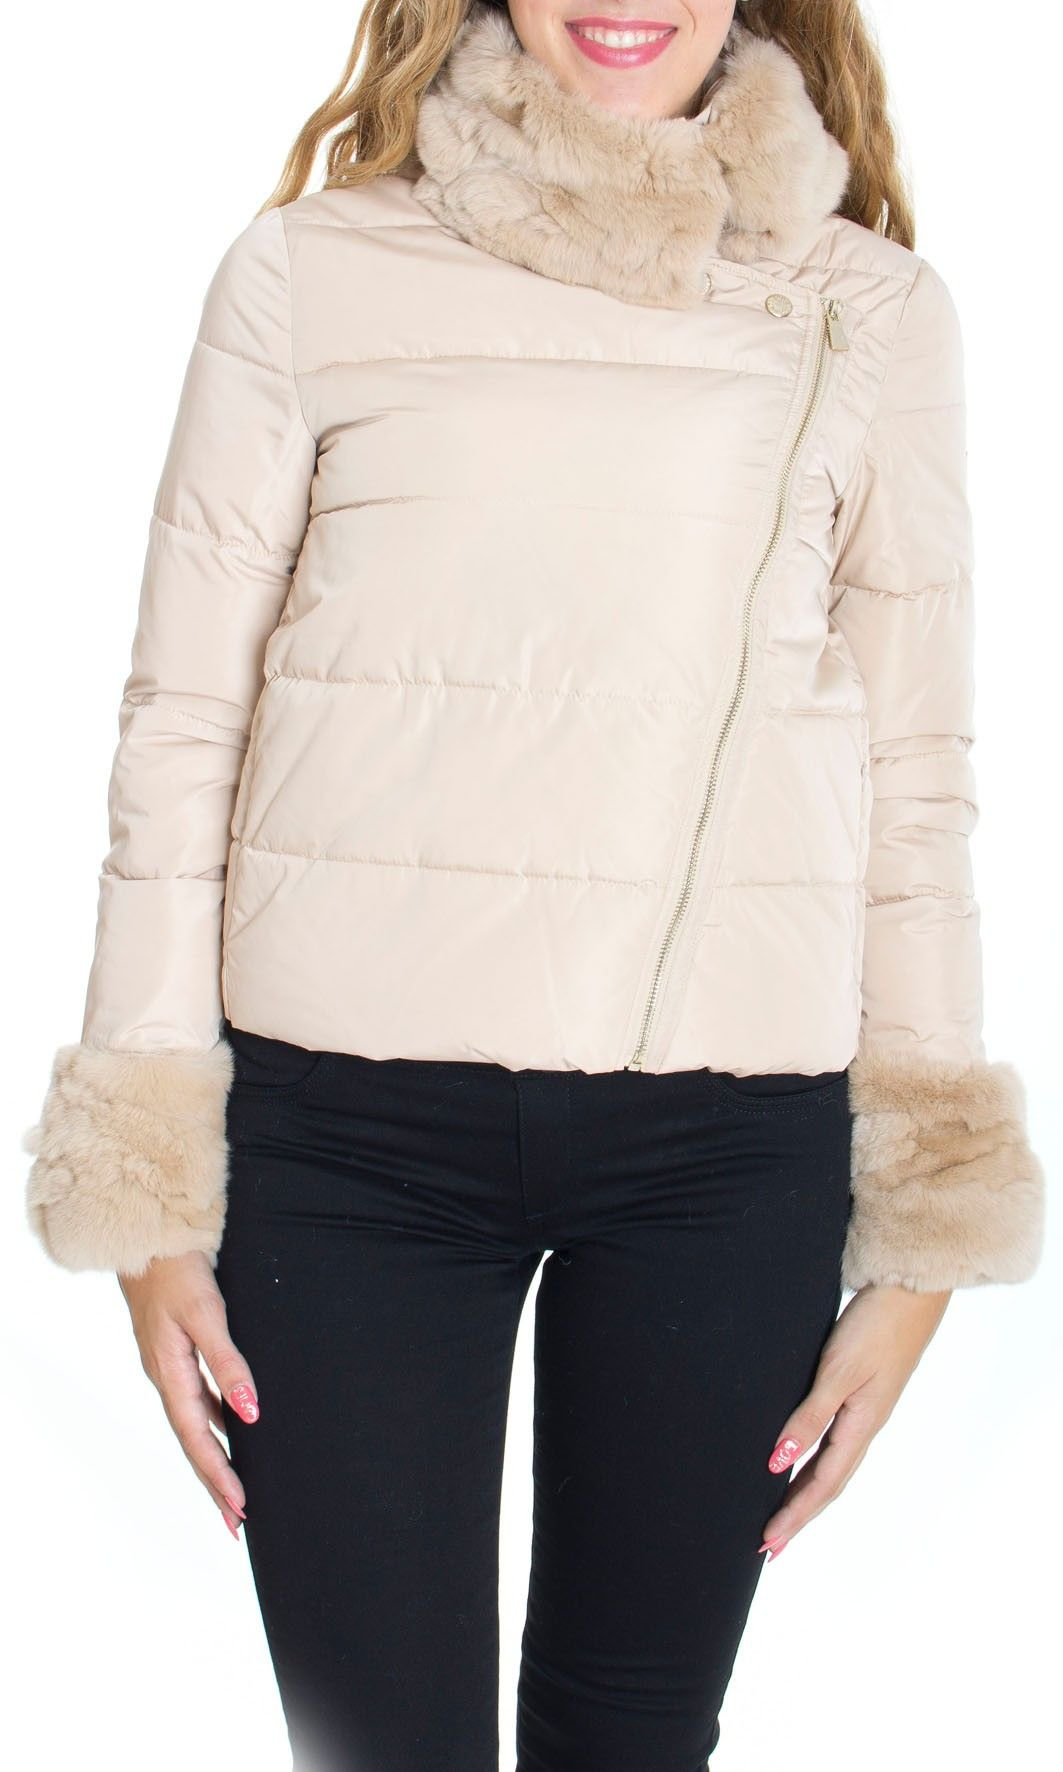 giacca invernale beige donna